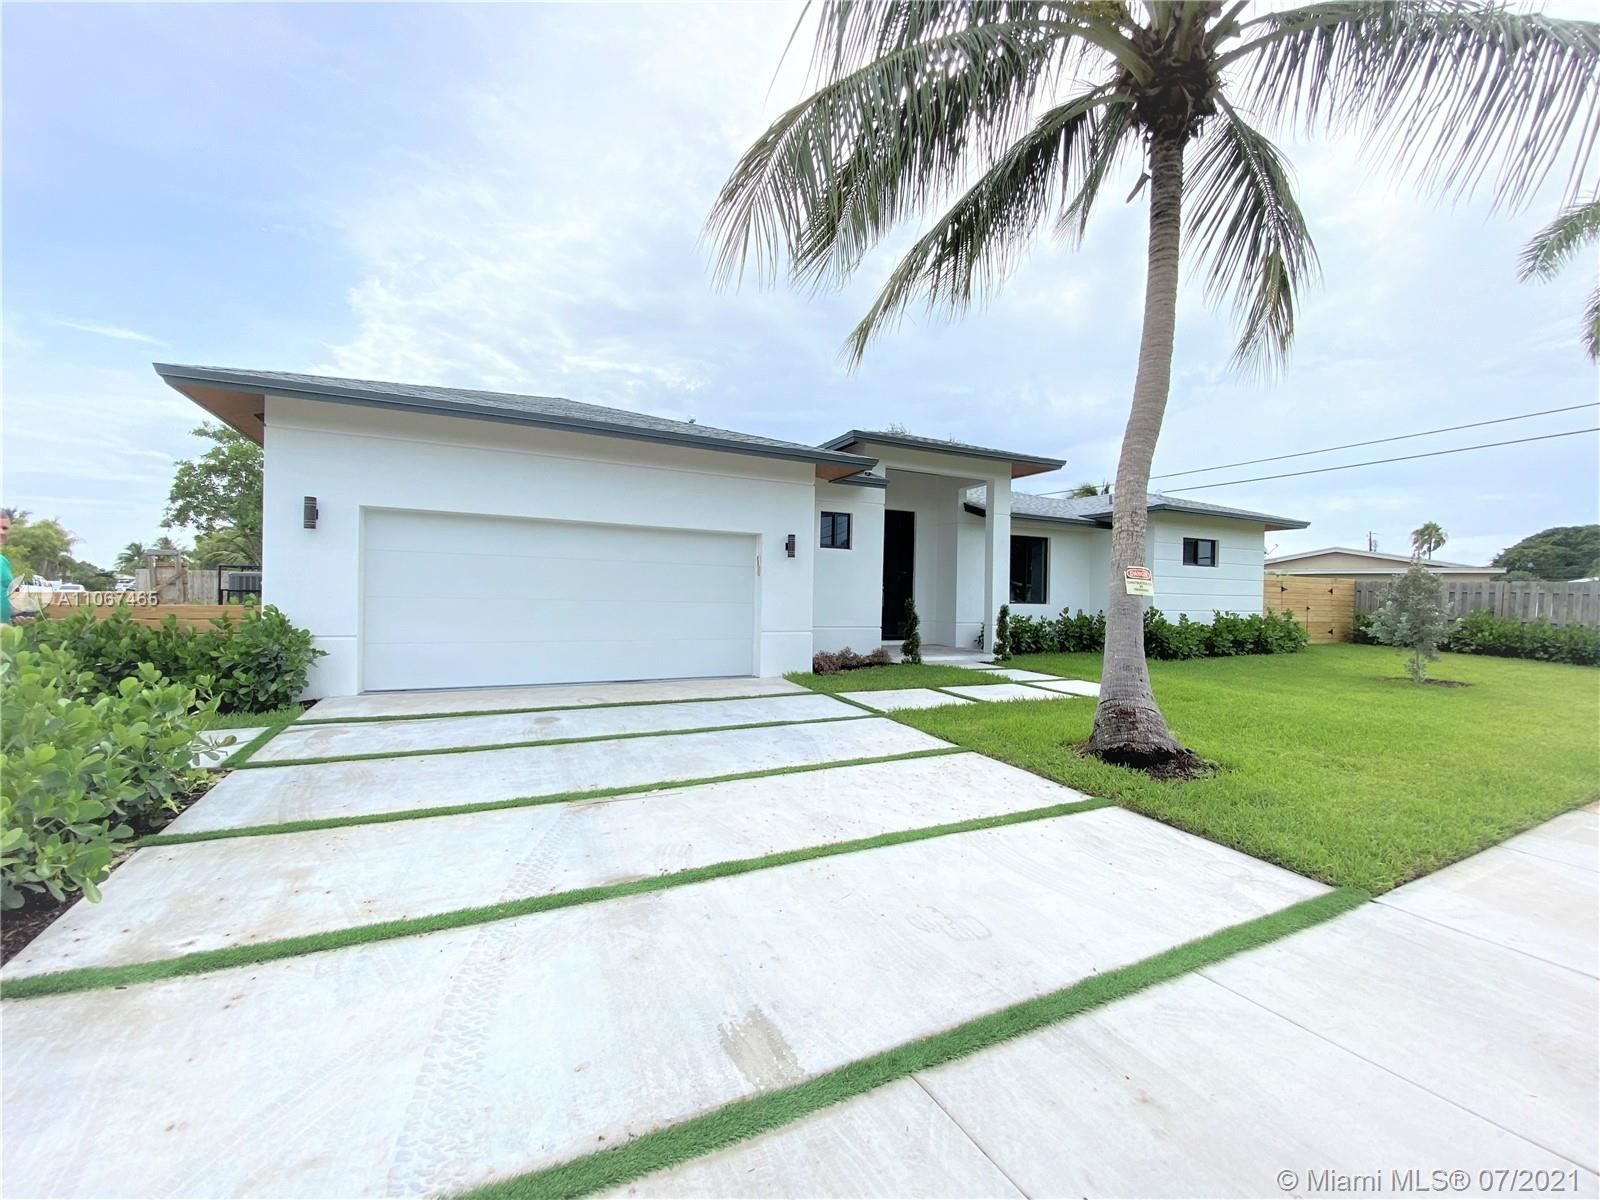 1930 SW 36th Ave, Fort Lauderdale, FL 33312 - #: A11067465